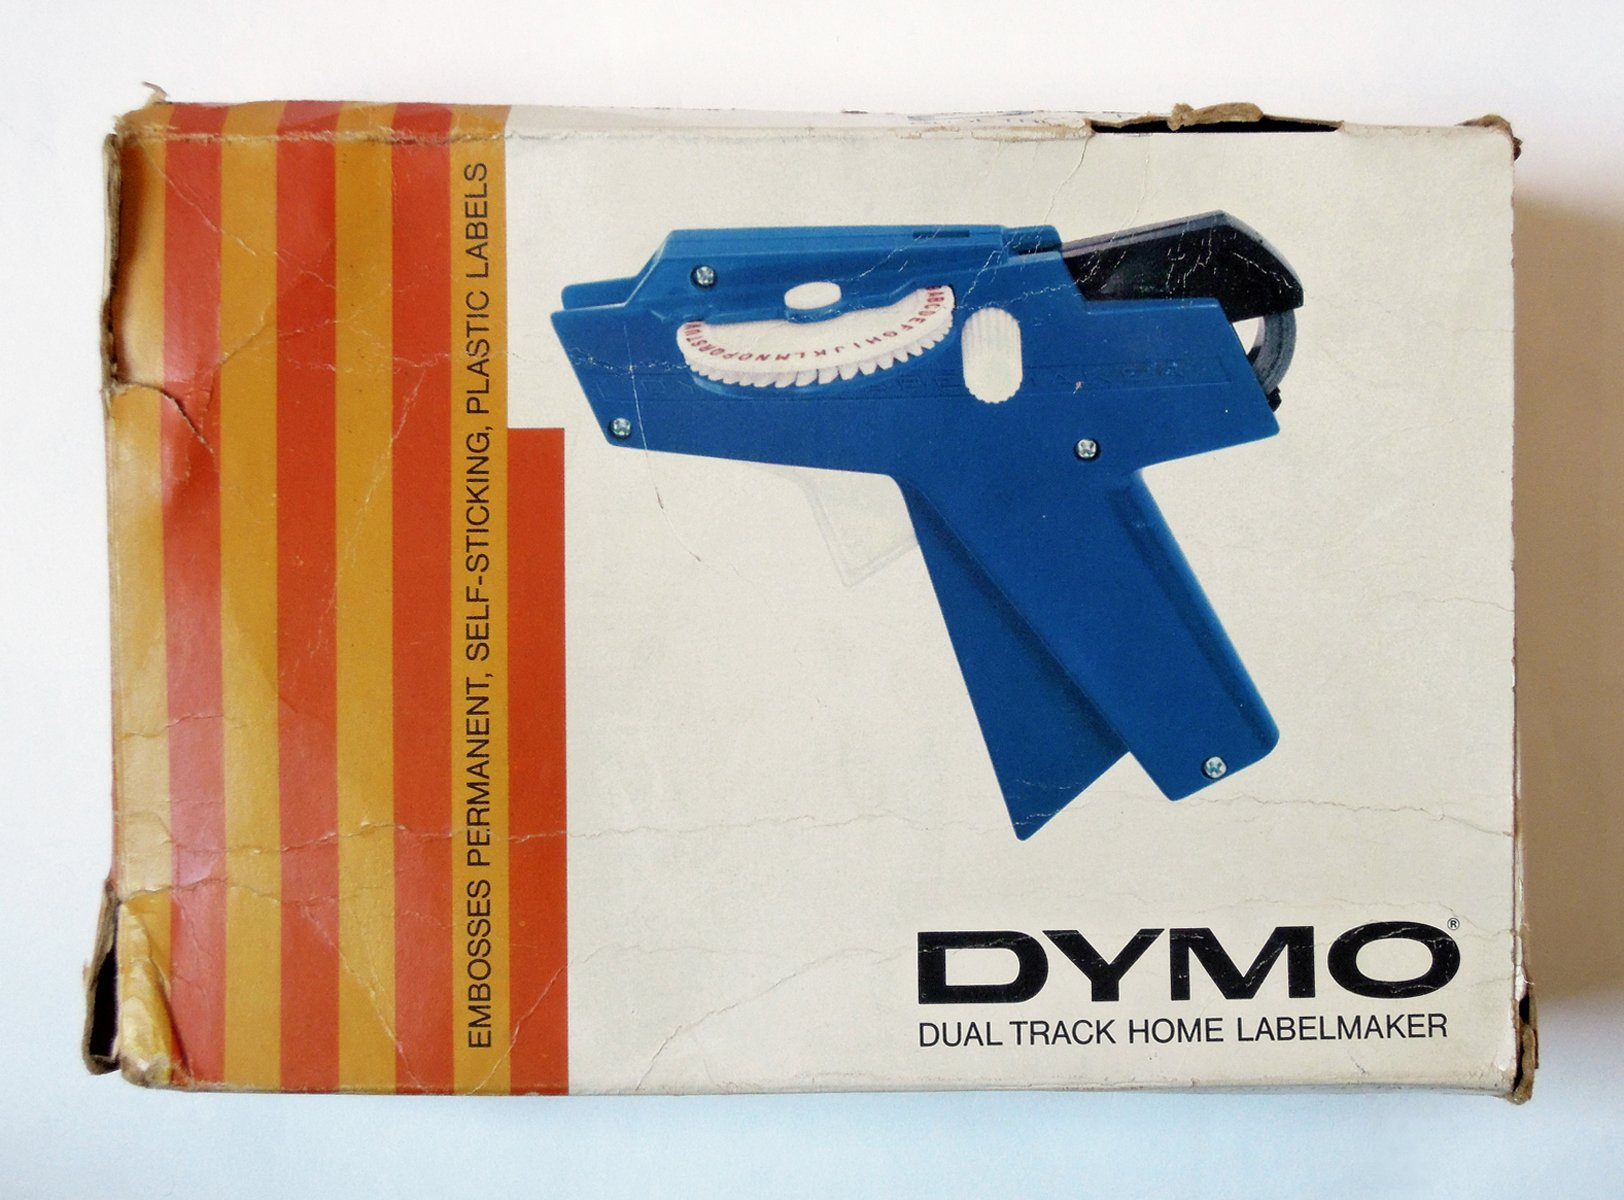 """A vintage Dymo """"dual track home labelmaker"""" box in white, orange and blue."""